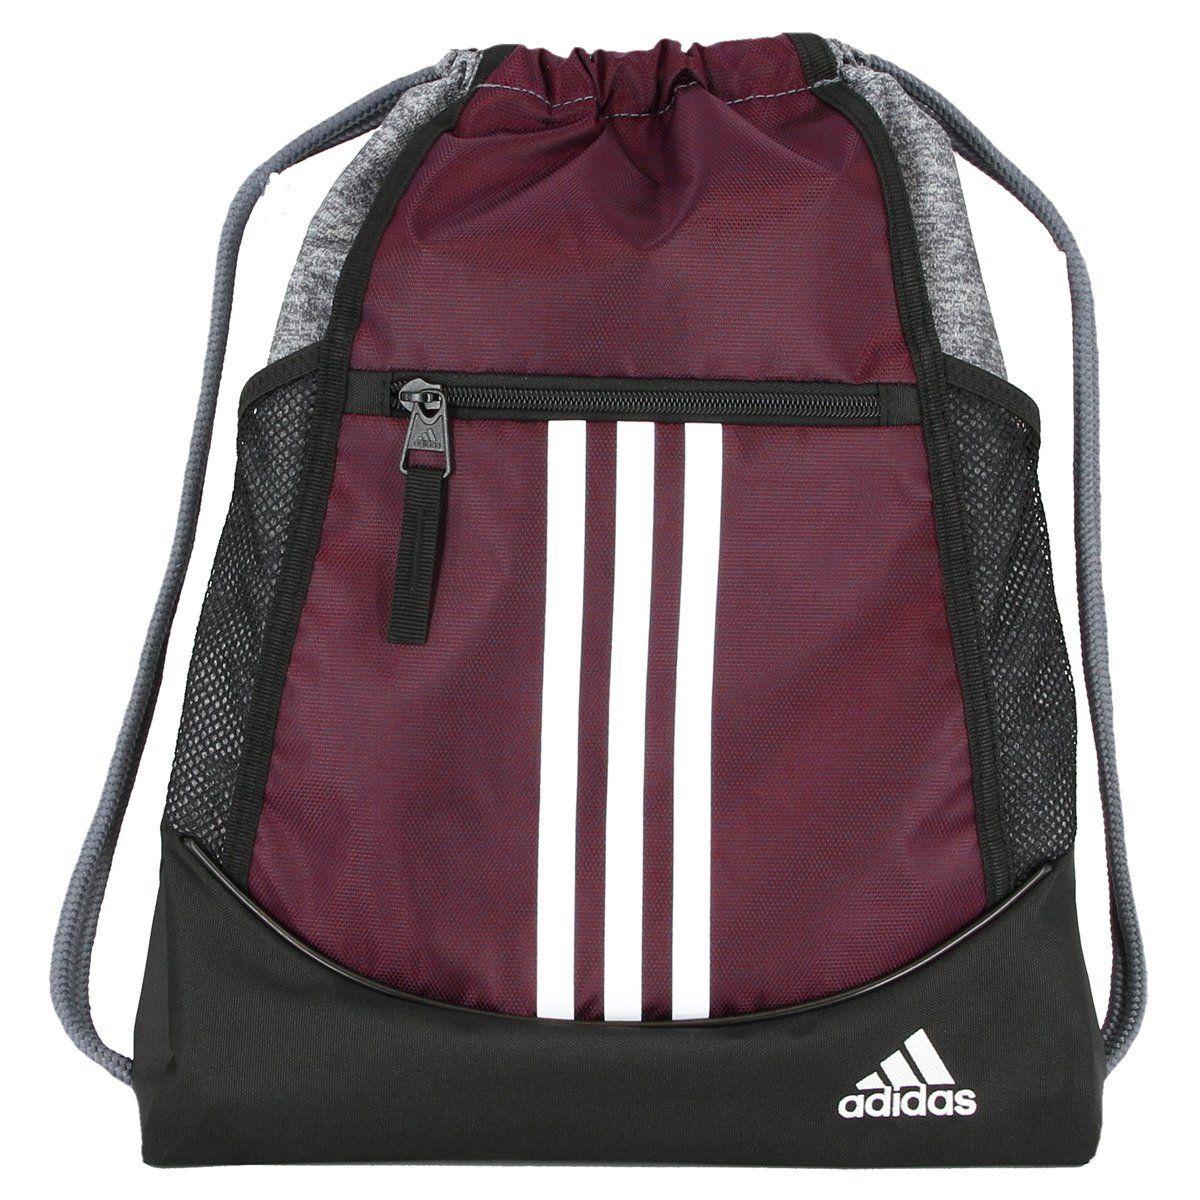 bc680b3ff7f3 Color Dark Burgundy Onix Jersey Black White adidas Alliance Sack Pack  Drawstring Gym Bags Unisex Backpacks Sports Sackpacks With two water bottle  pockets ...